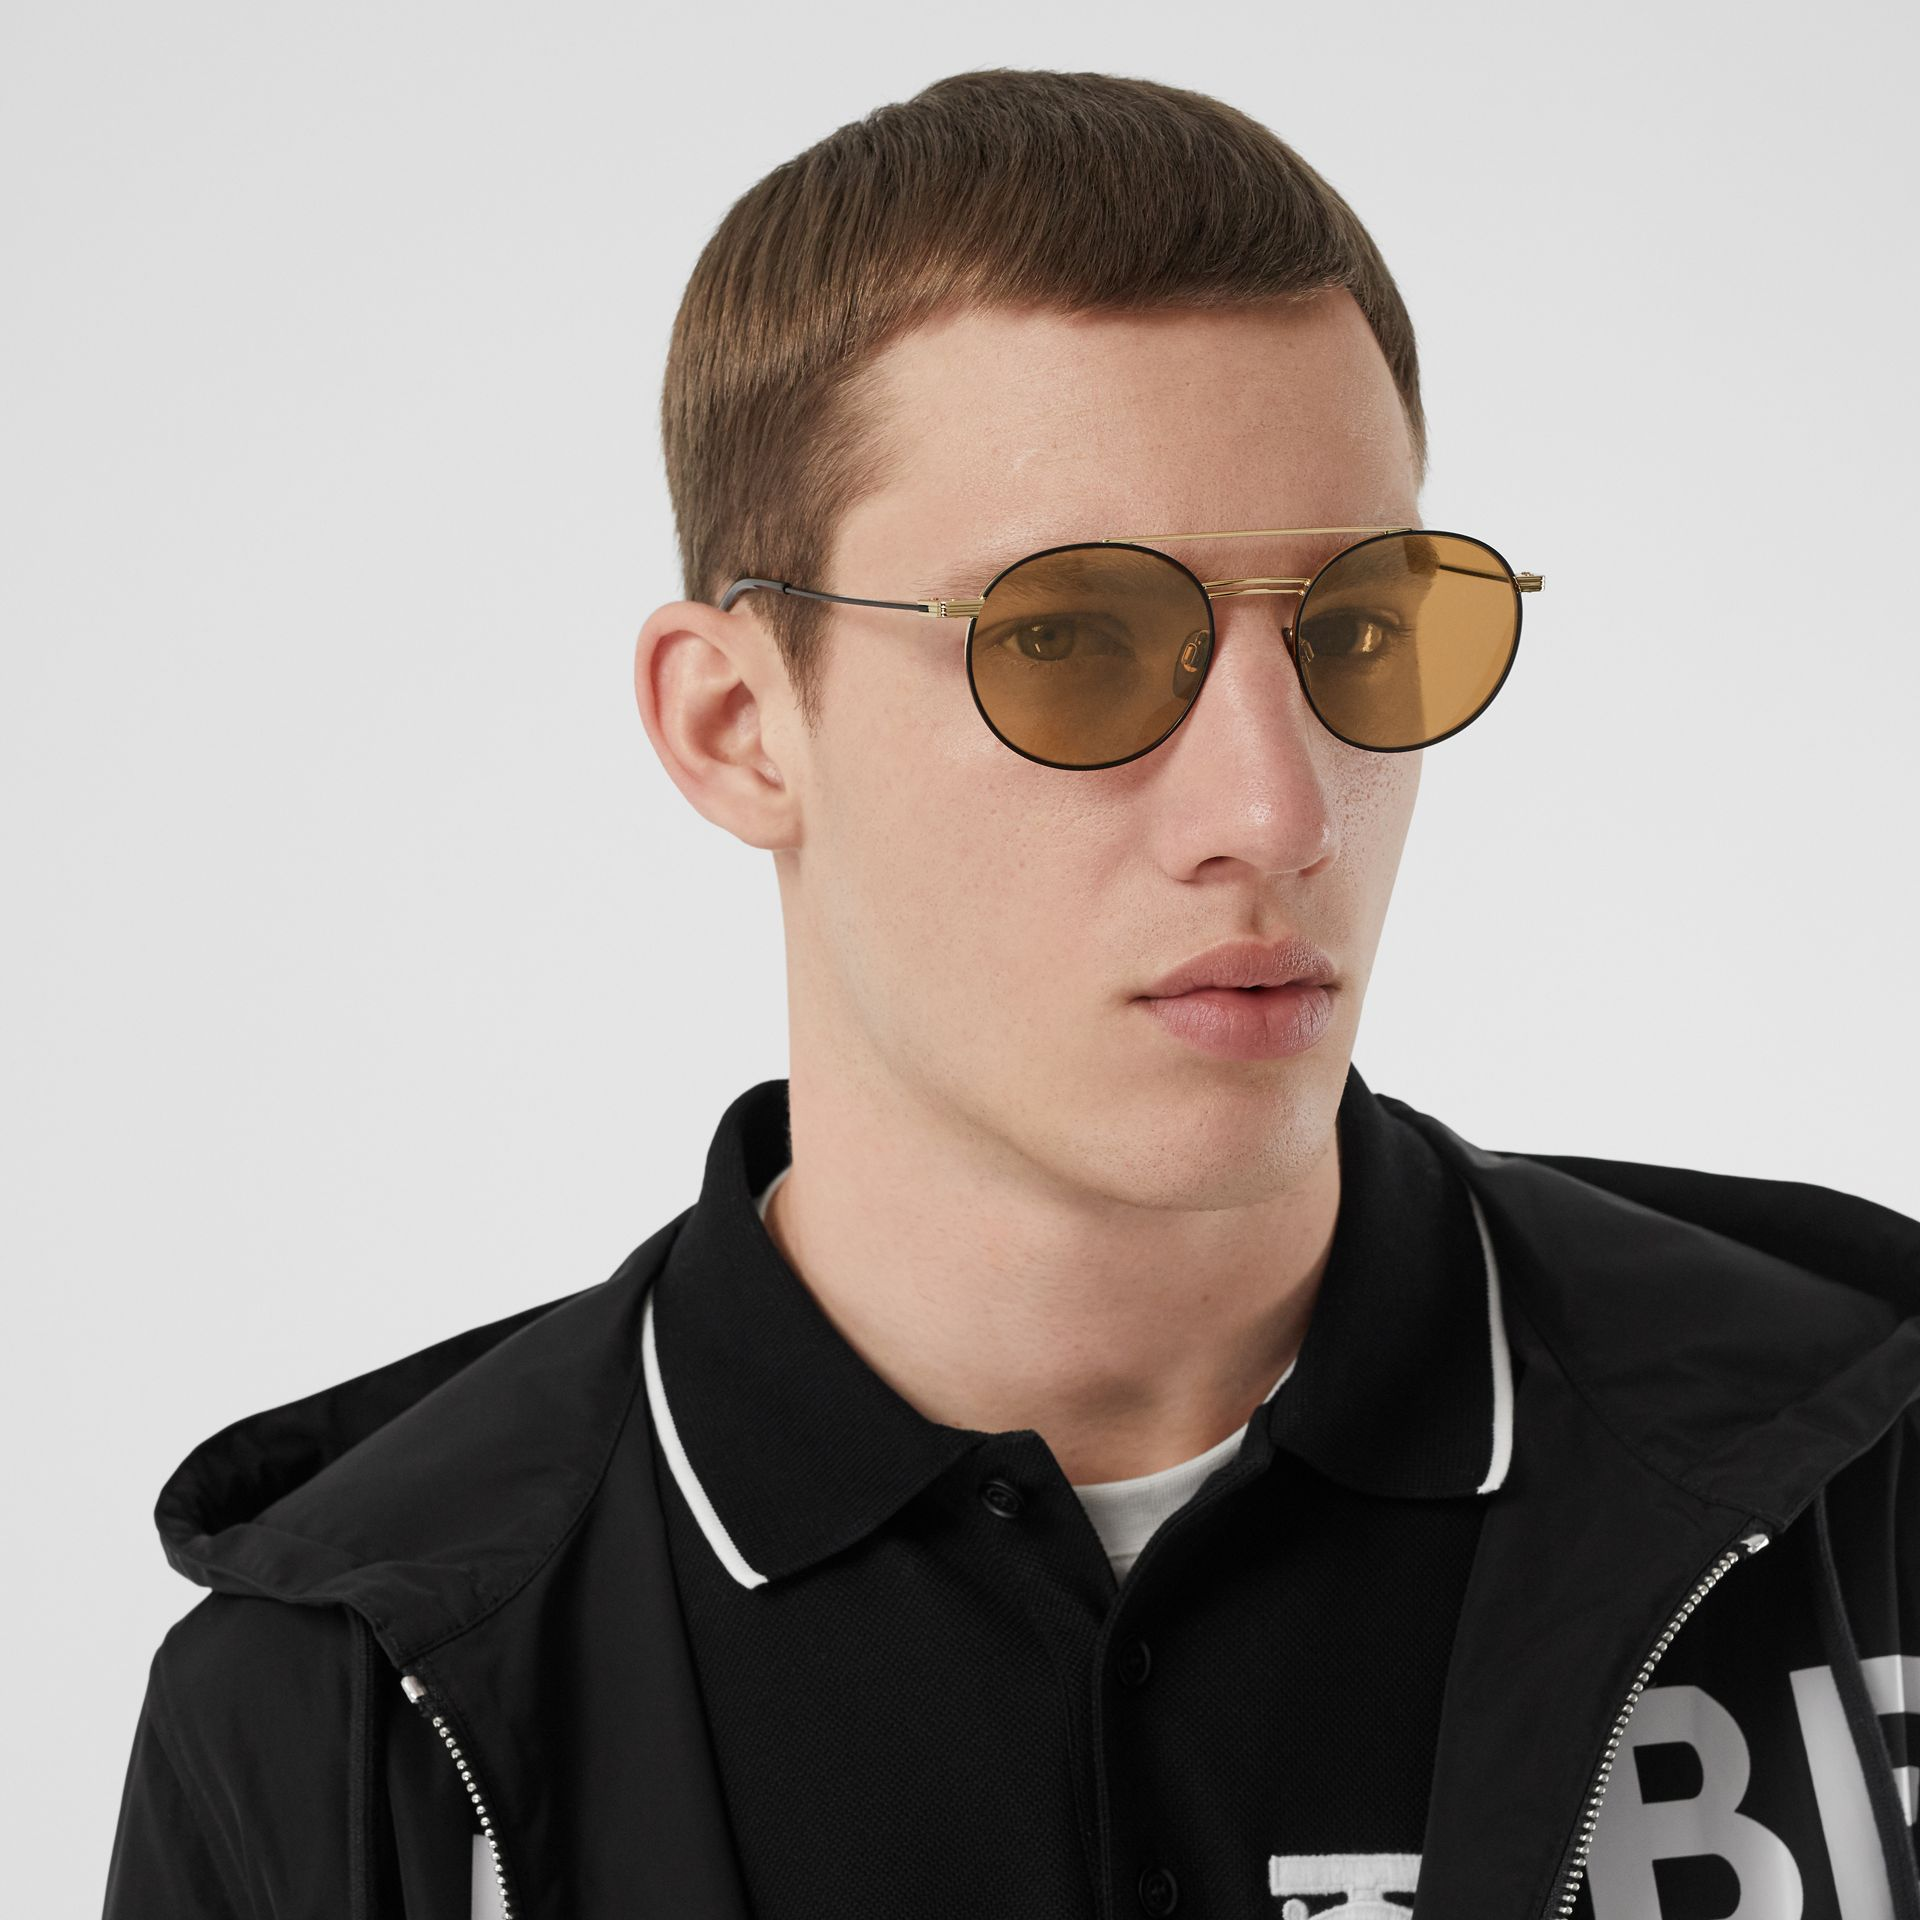 Top Bar Detail Round Frame Sunglasses in Tortoiseshell - Men | Burberry Hong Kong - gallery image 2